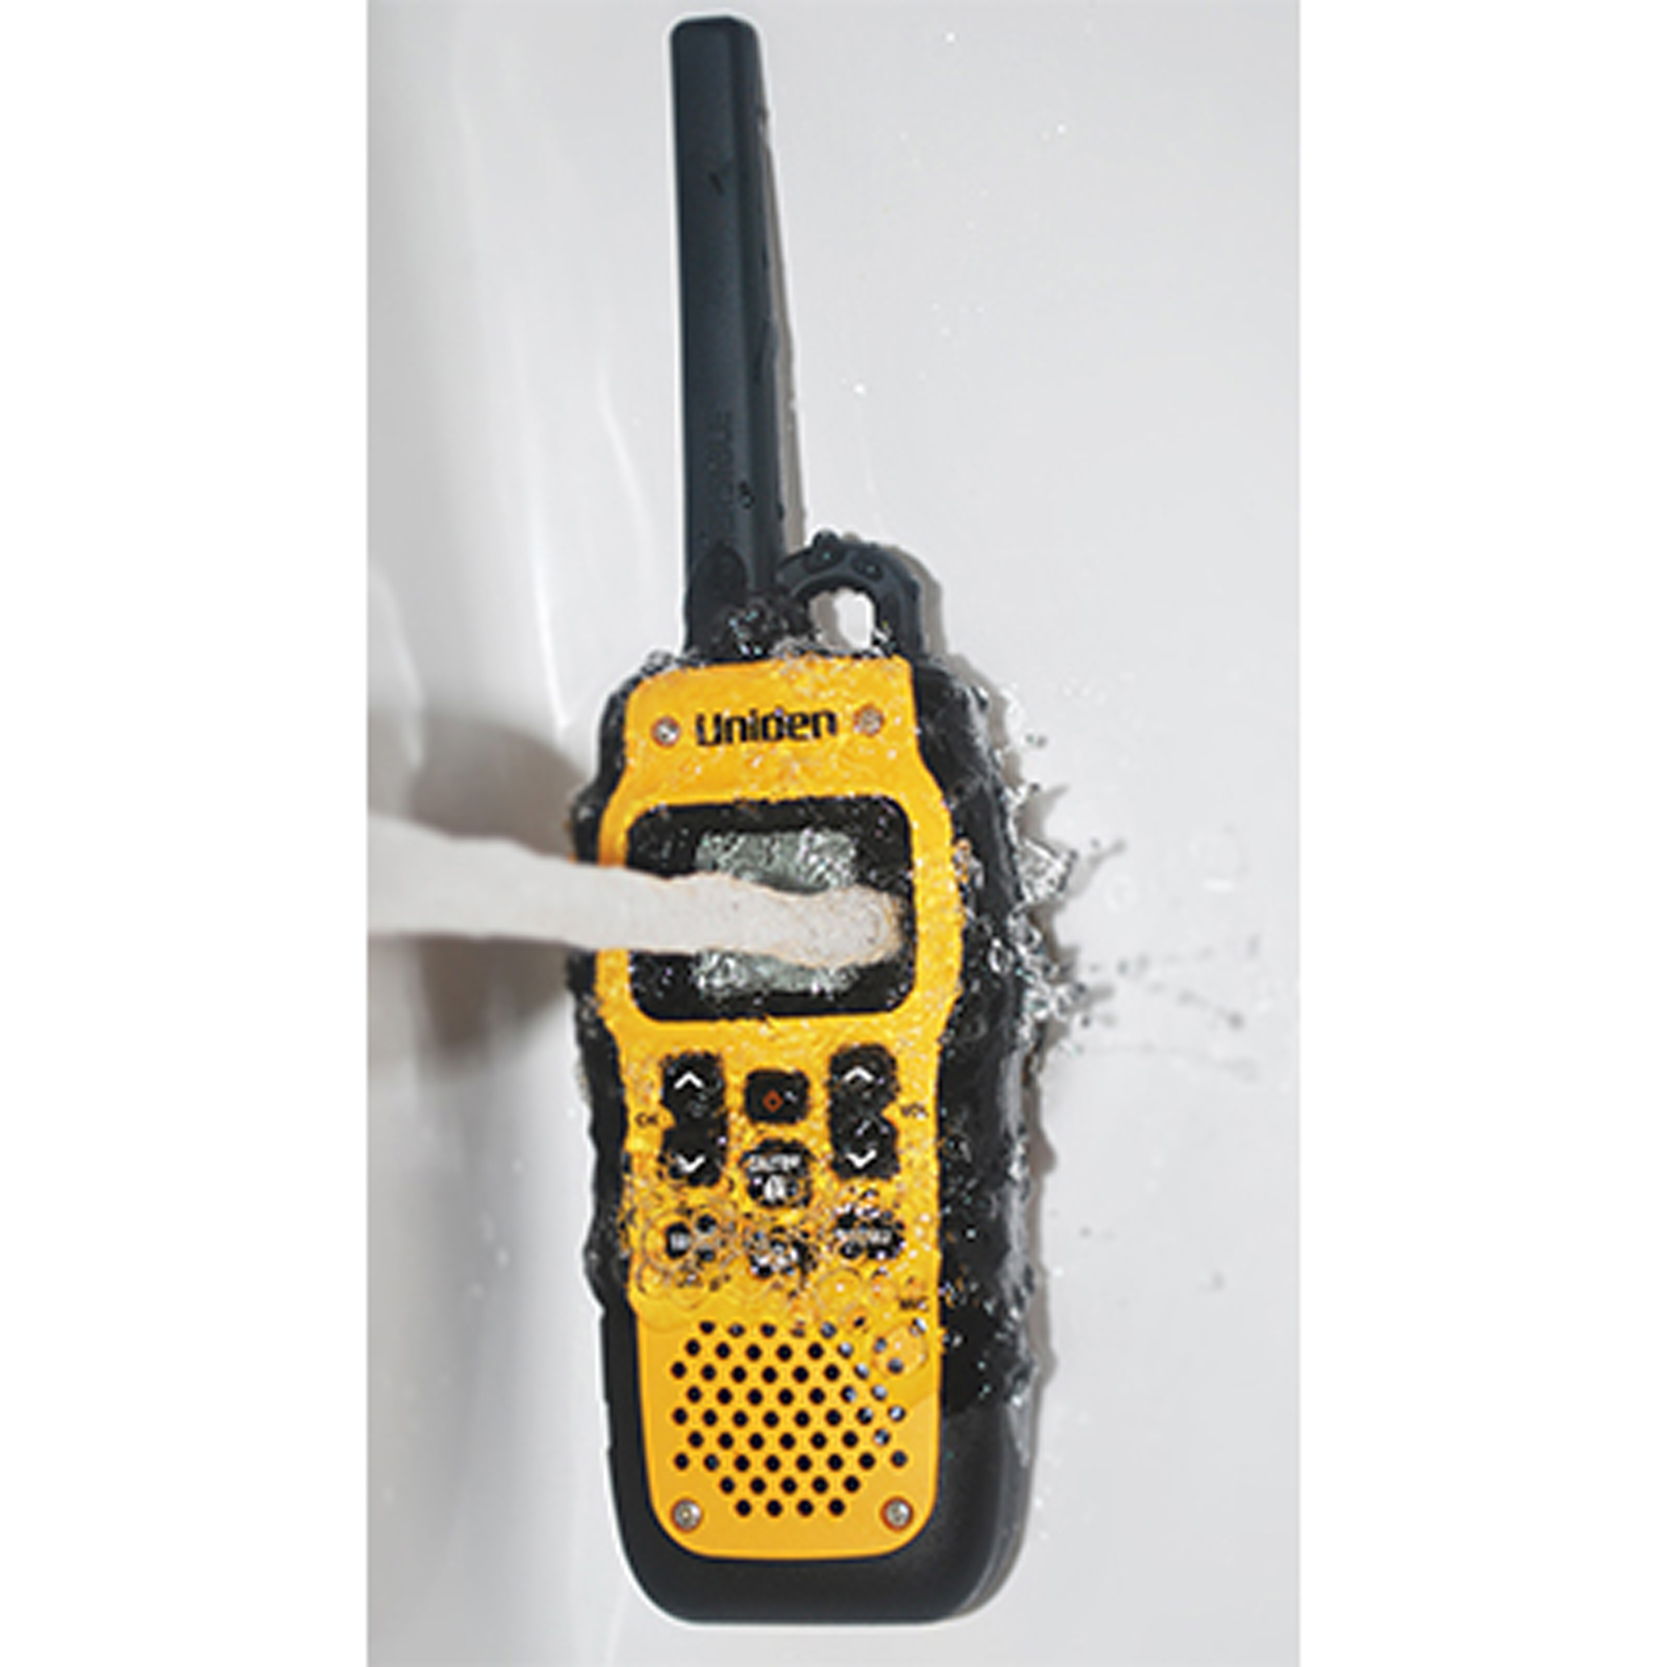 how to make a walky talky